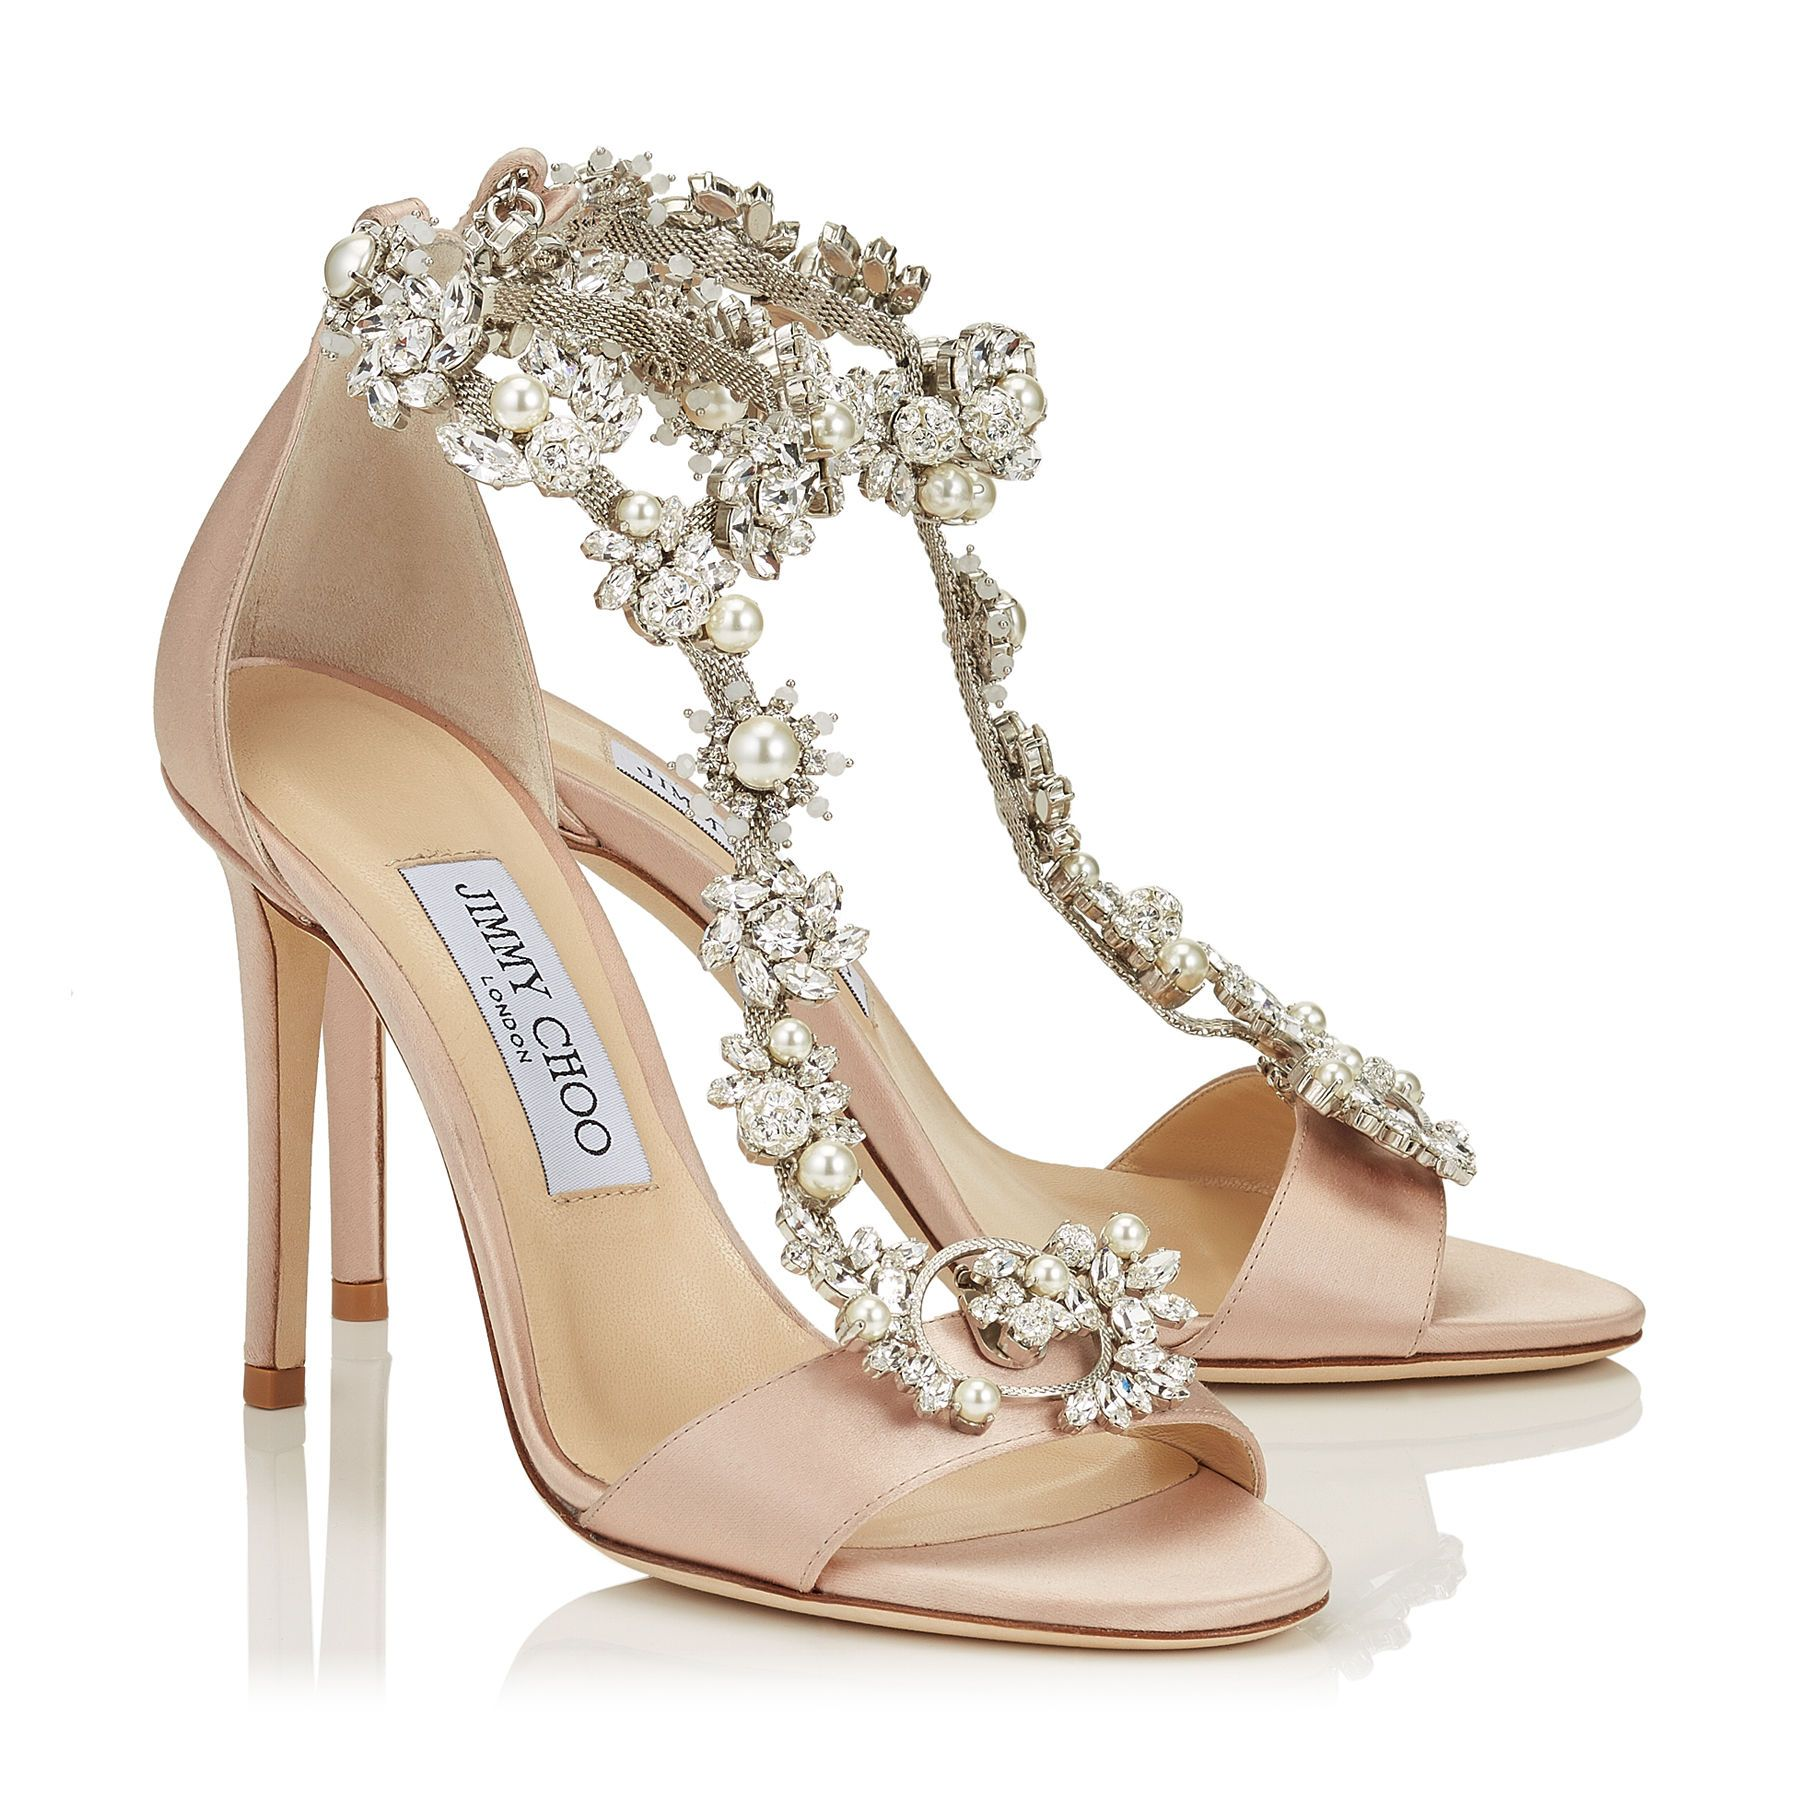 Dusty Rose Satin Sandals with Camellia Mix Anklet | Reign 100 | Cruise 17 |  JIMMY